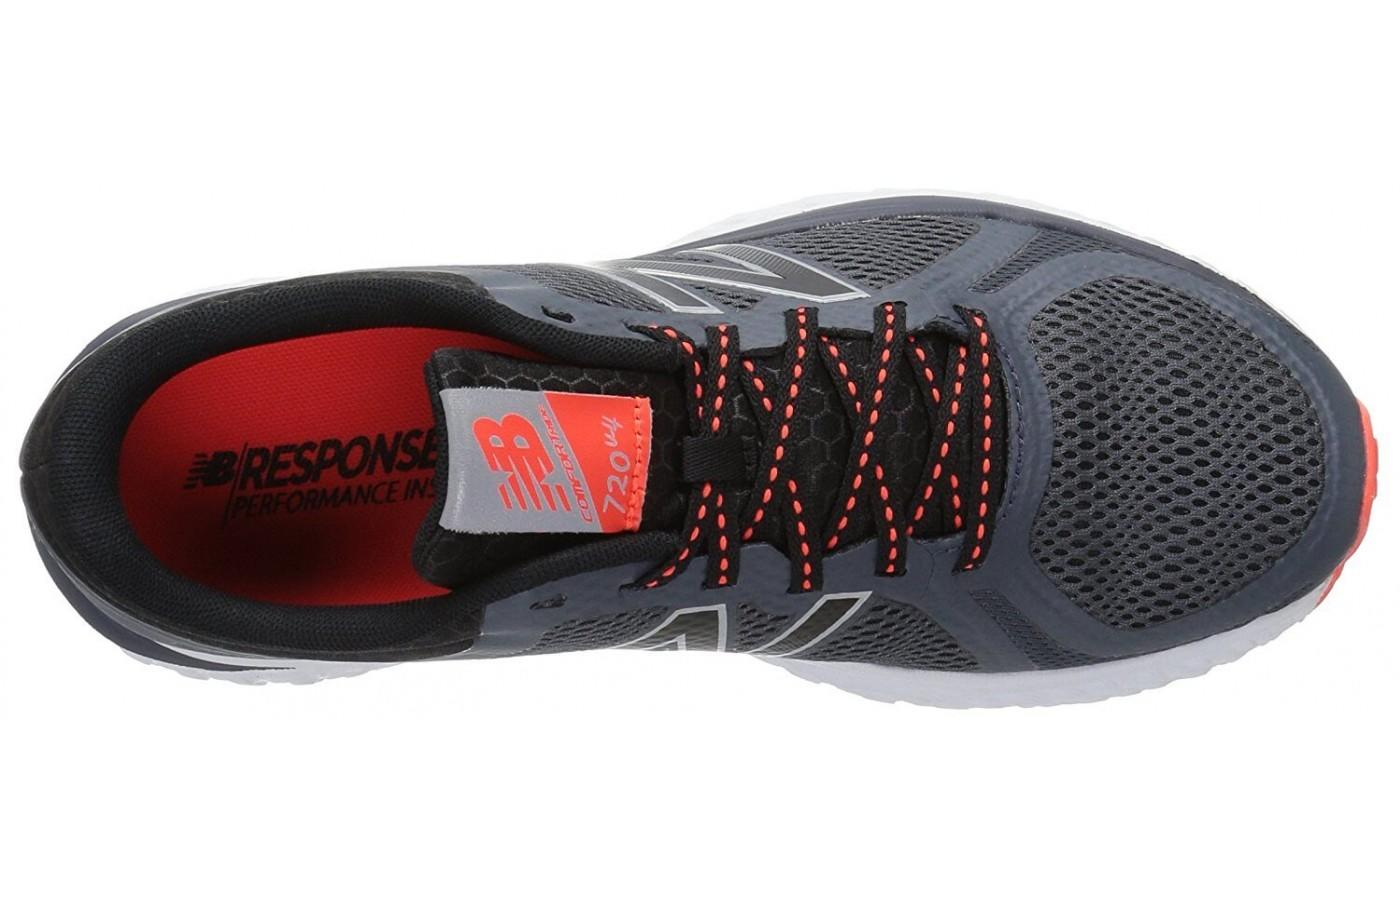 The New Balance 720 V4 has a padded heel collar